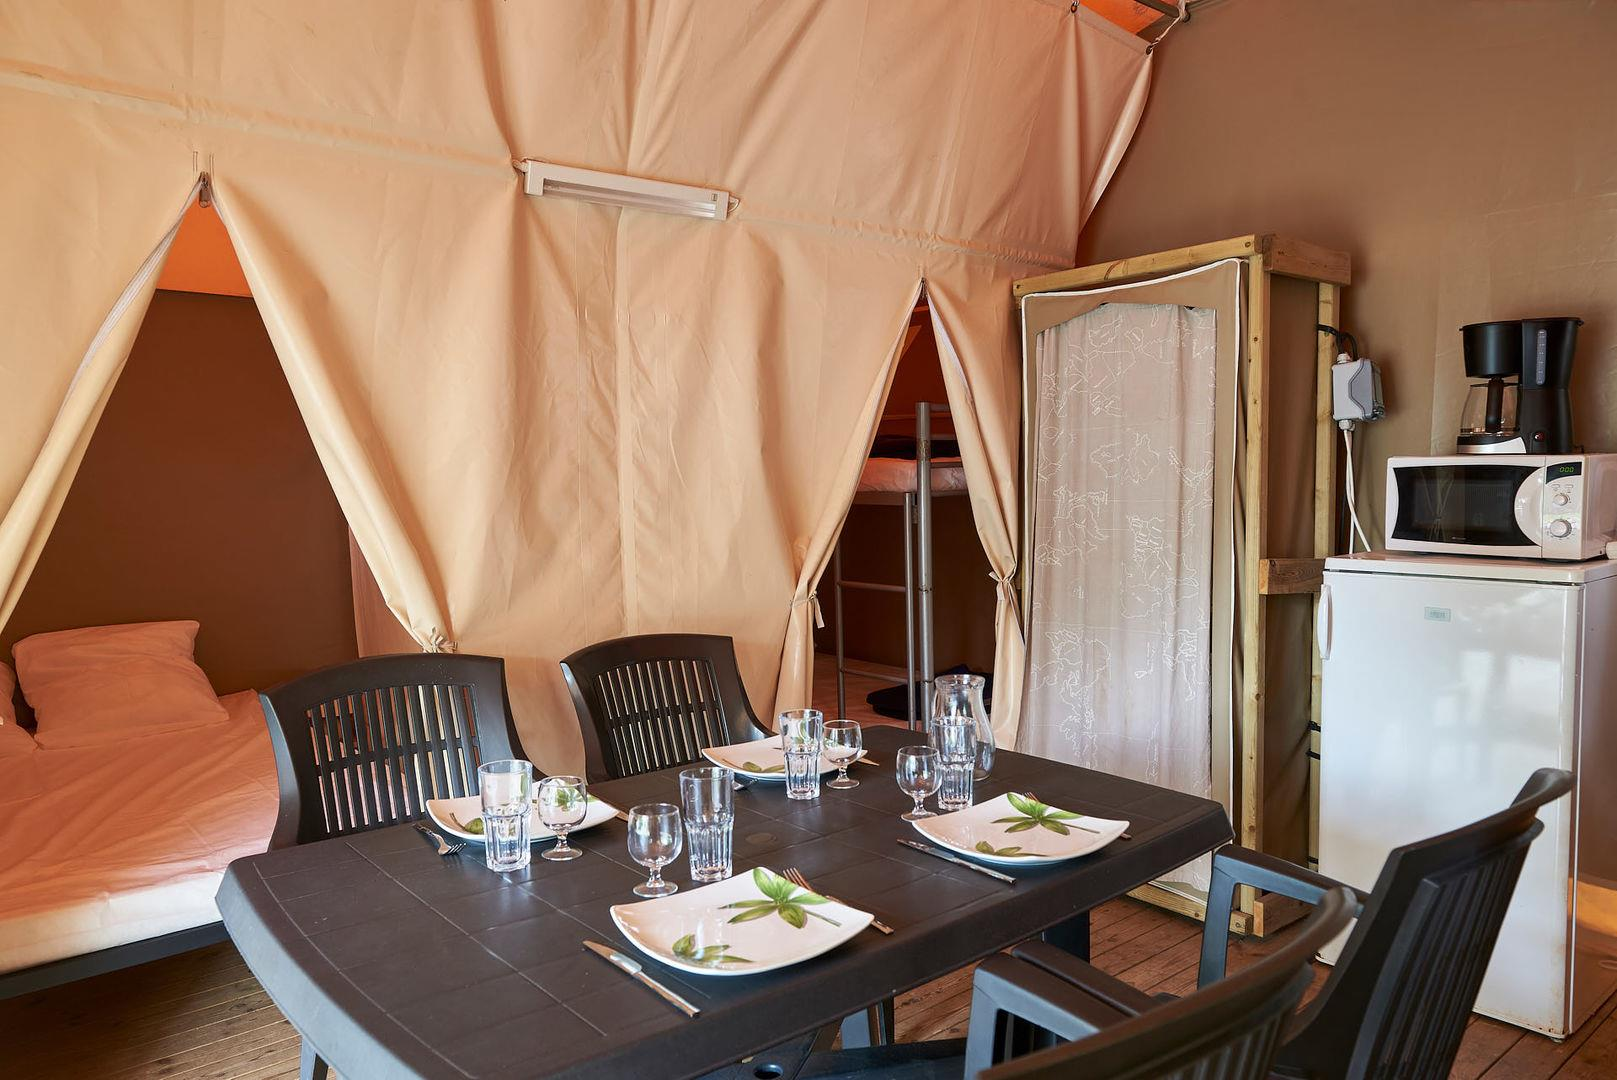 Accommodation - Furnished Tents 15M² - Camping Rives d'Arc